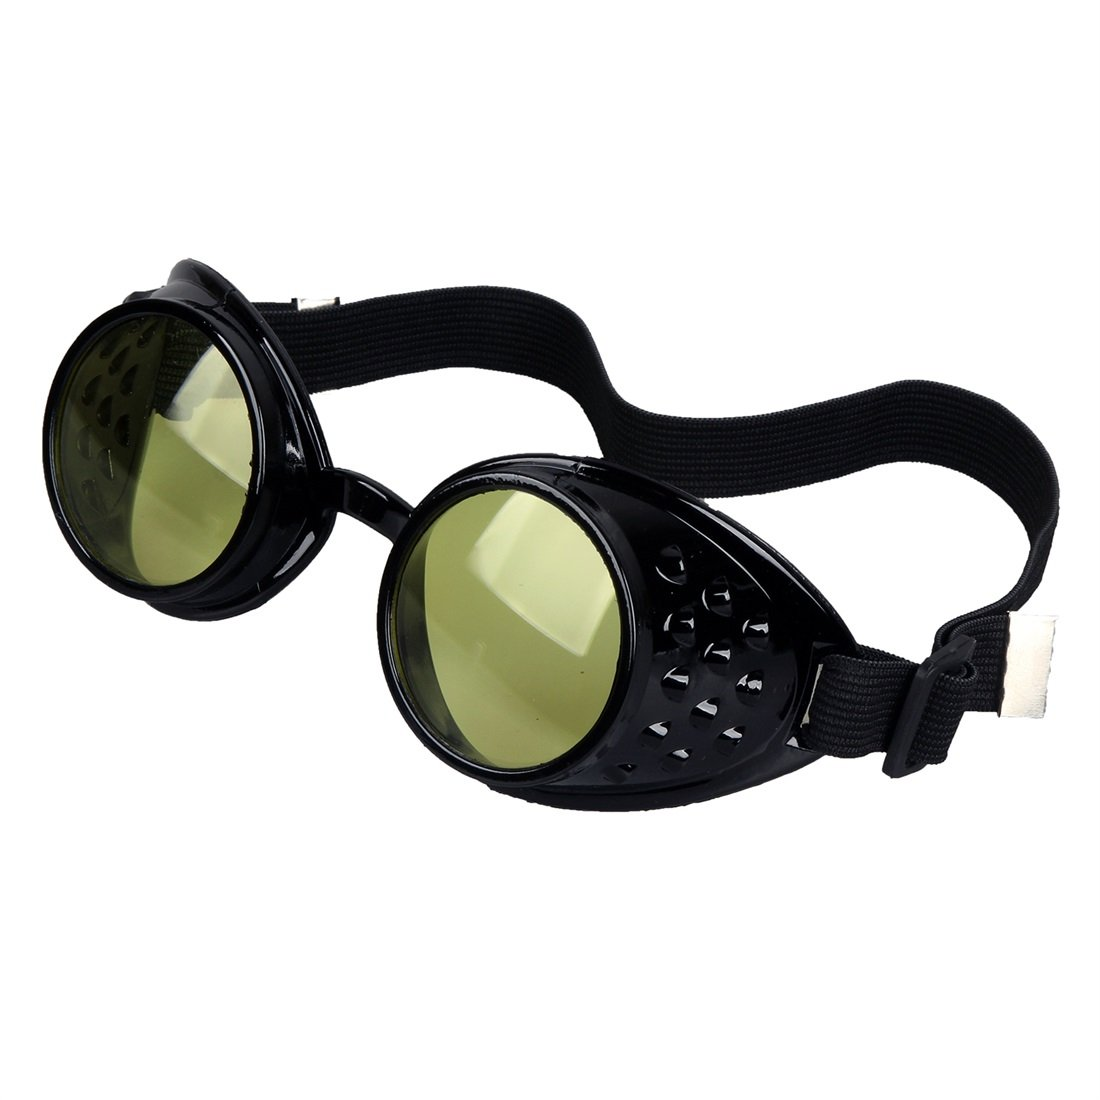 KOLCY Welding Cyber Punk Gothic Steampunk Goggles Cosplay Kaleidoscope Glasses